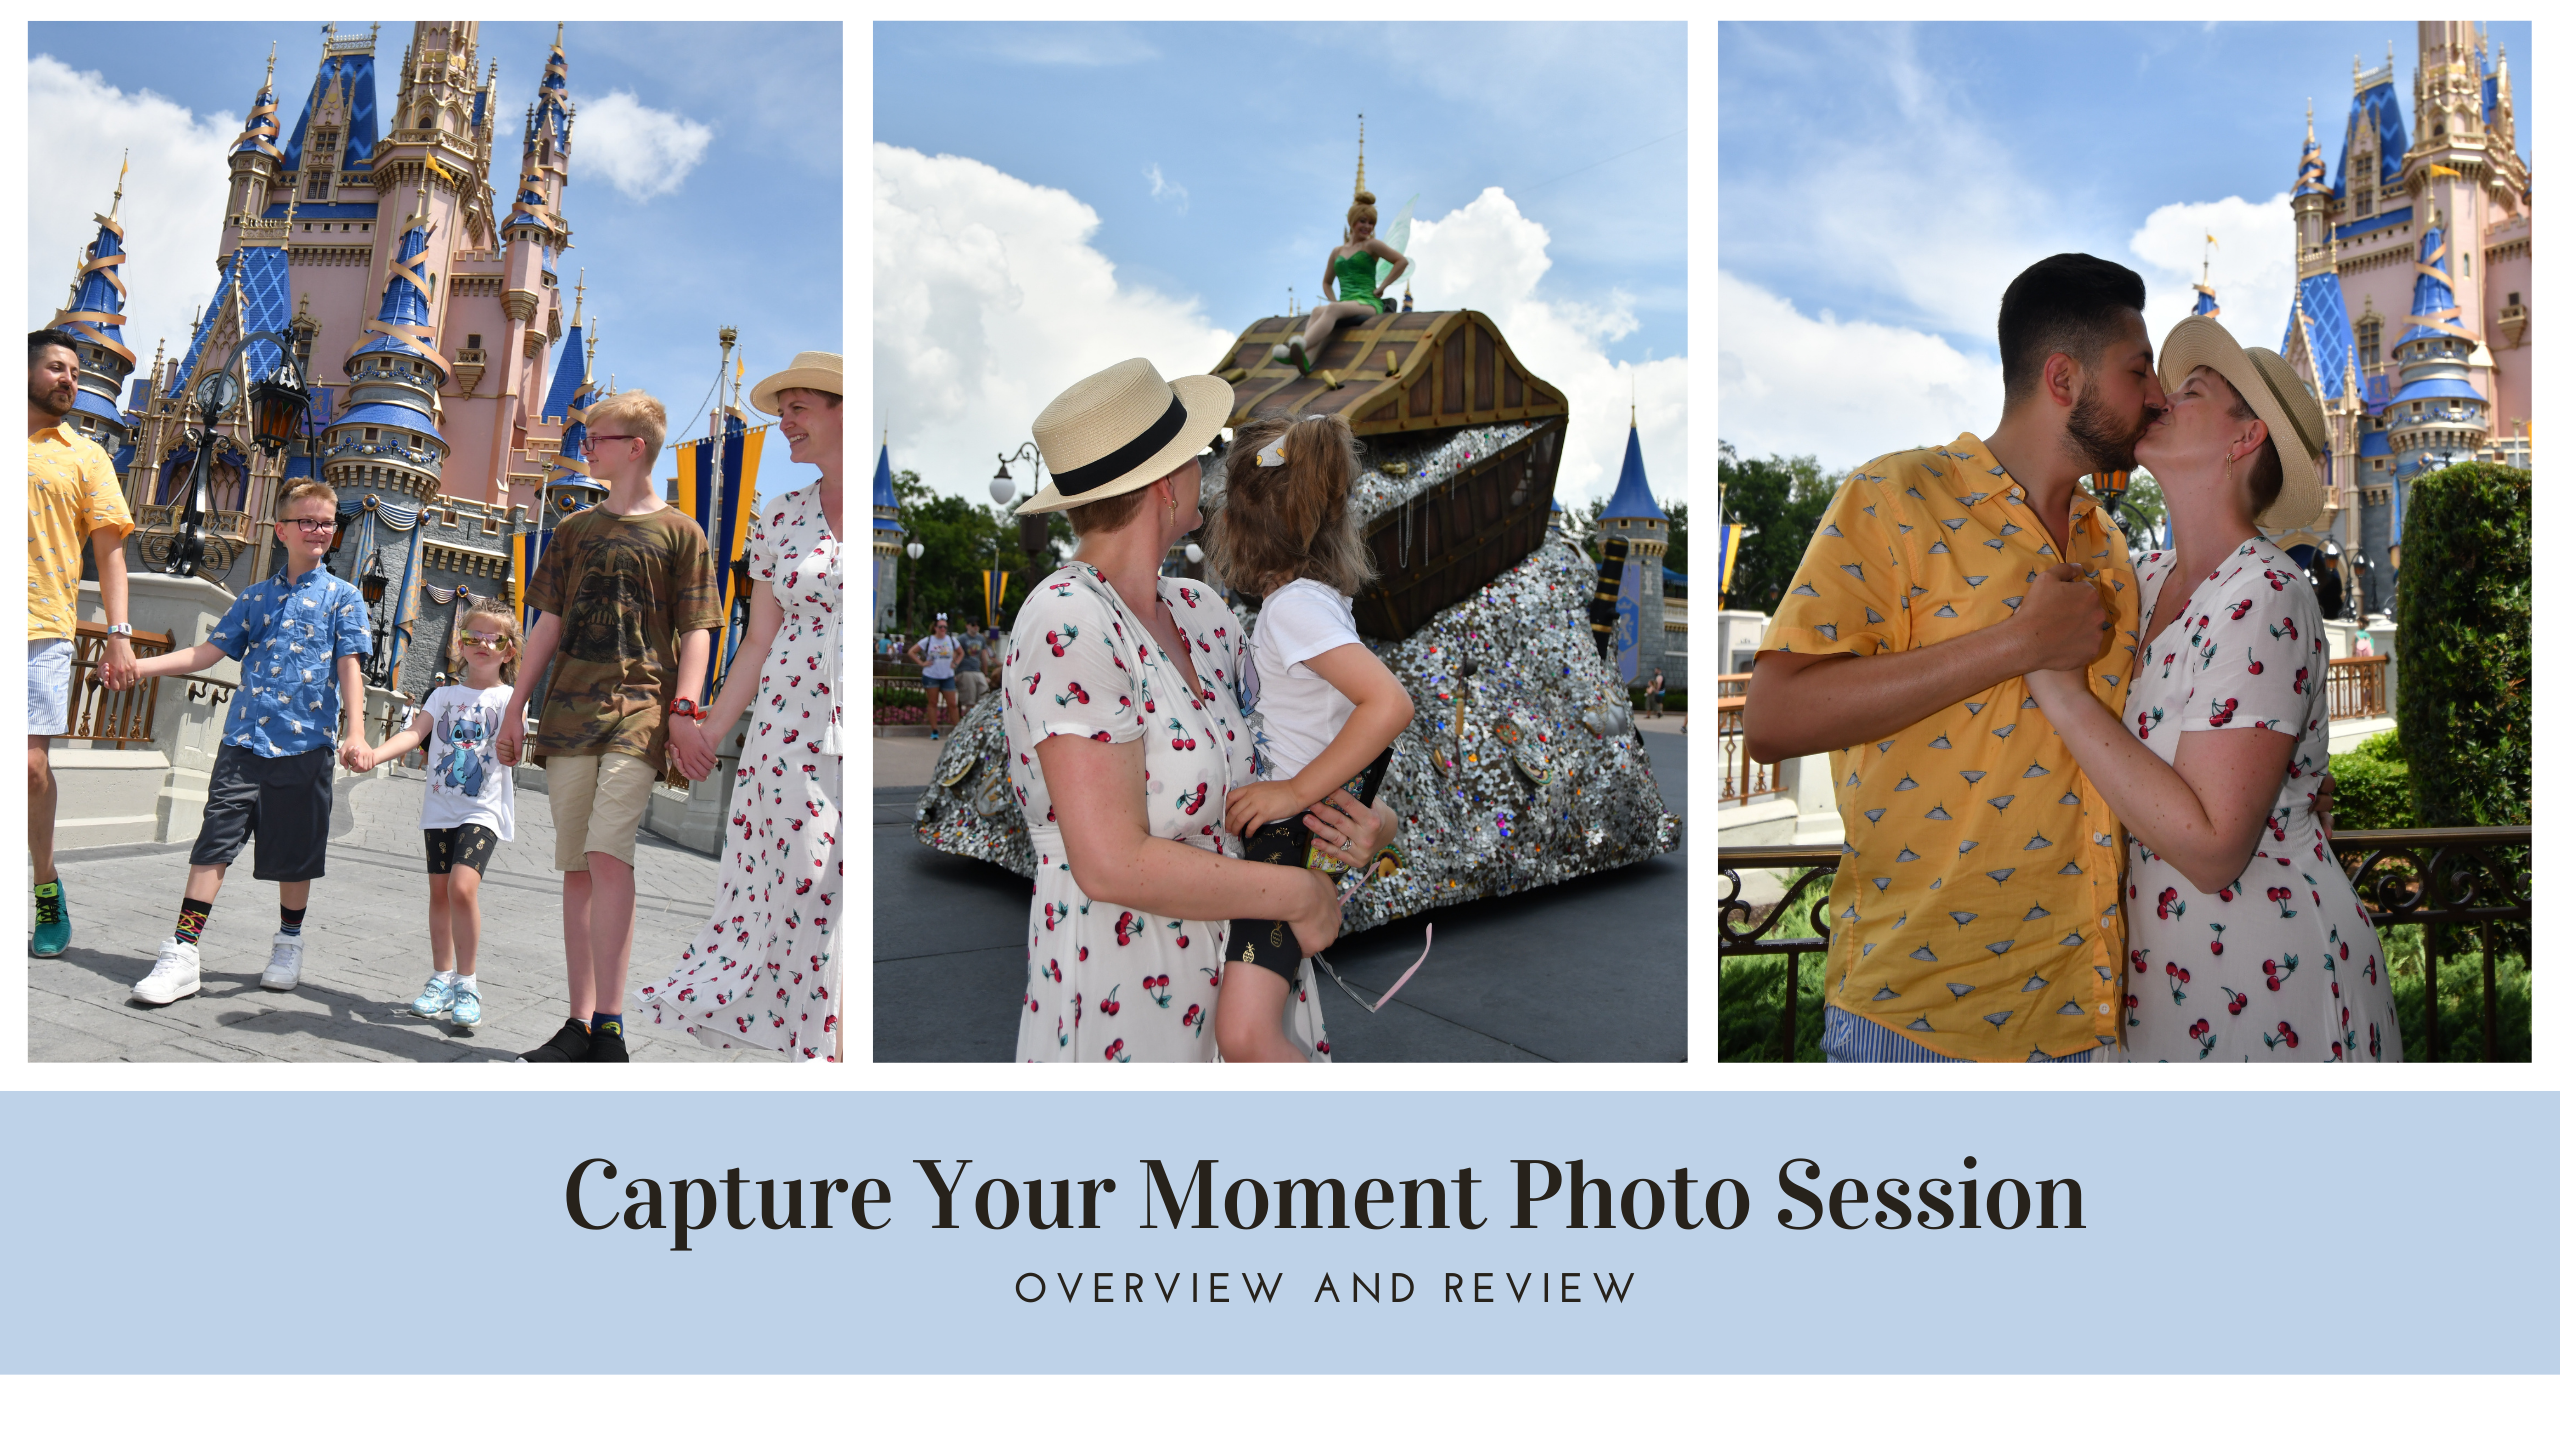 capture your moment overview and review